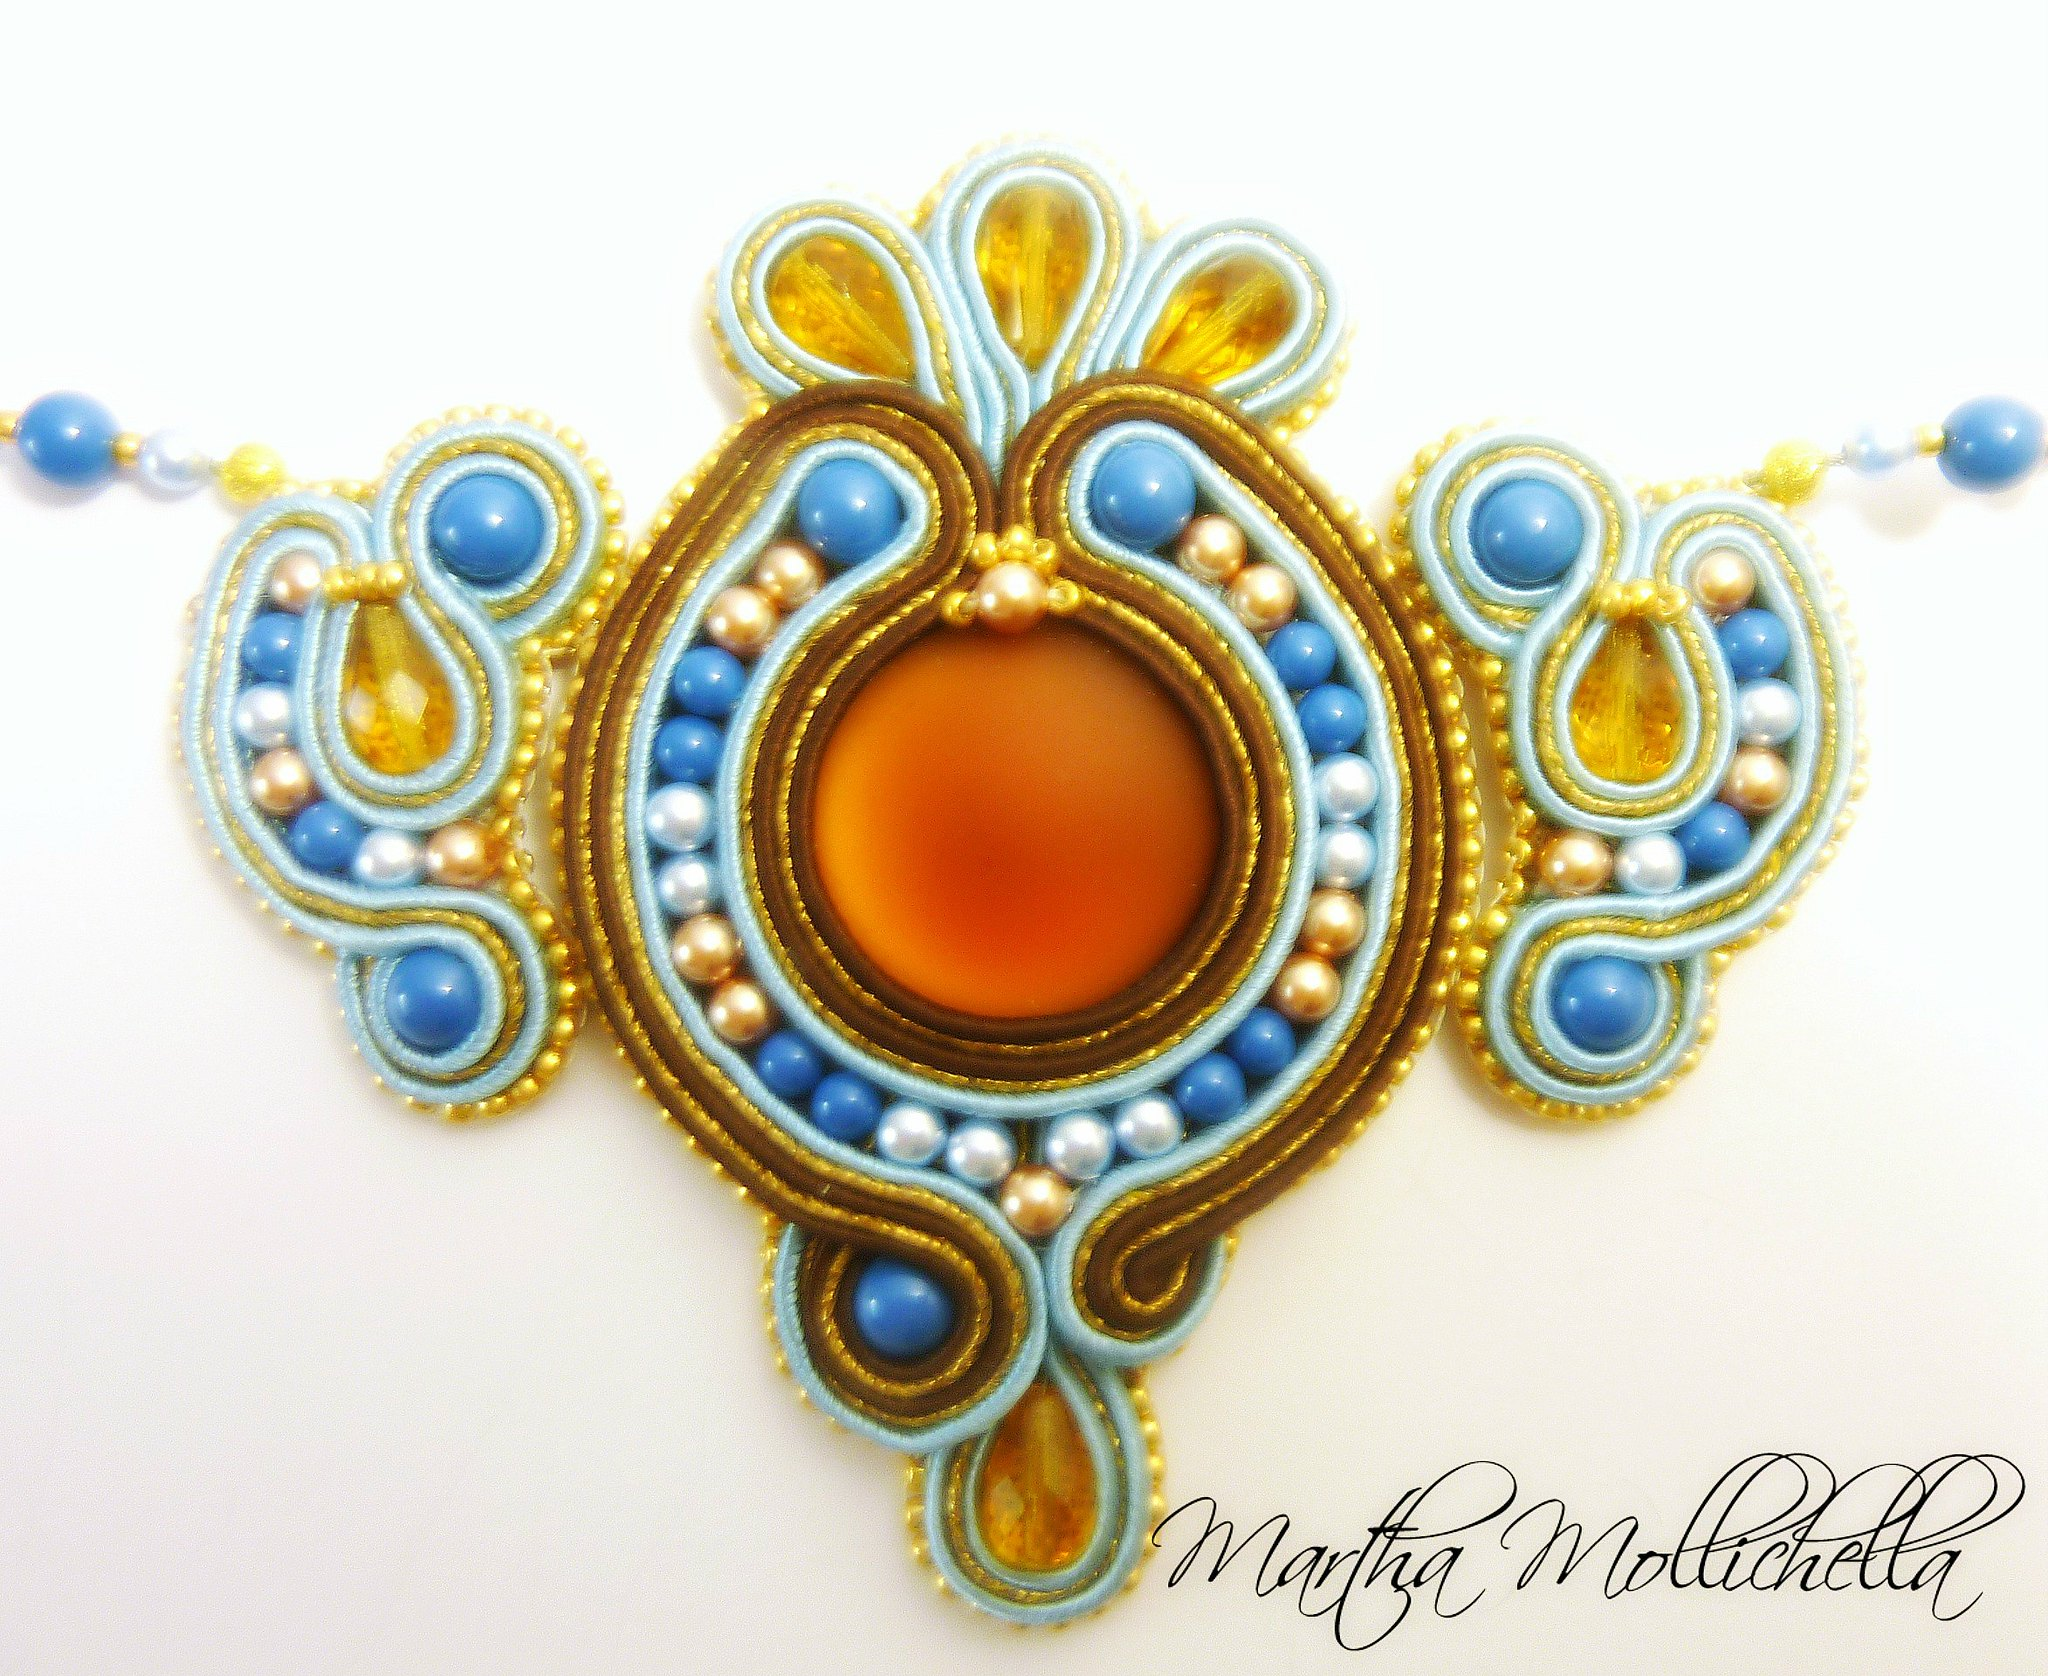 soutache jewels hand beaded jewellery hand made in Italy by Martha Mollichella Handmade jewelry